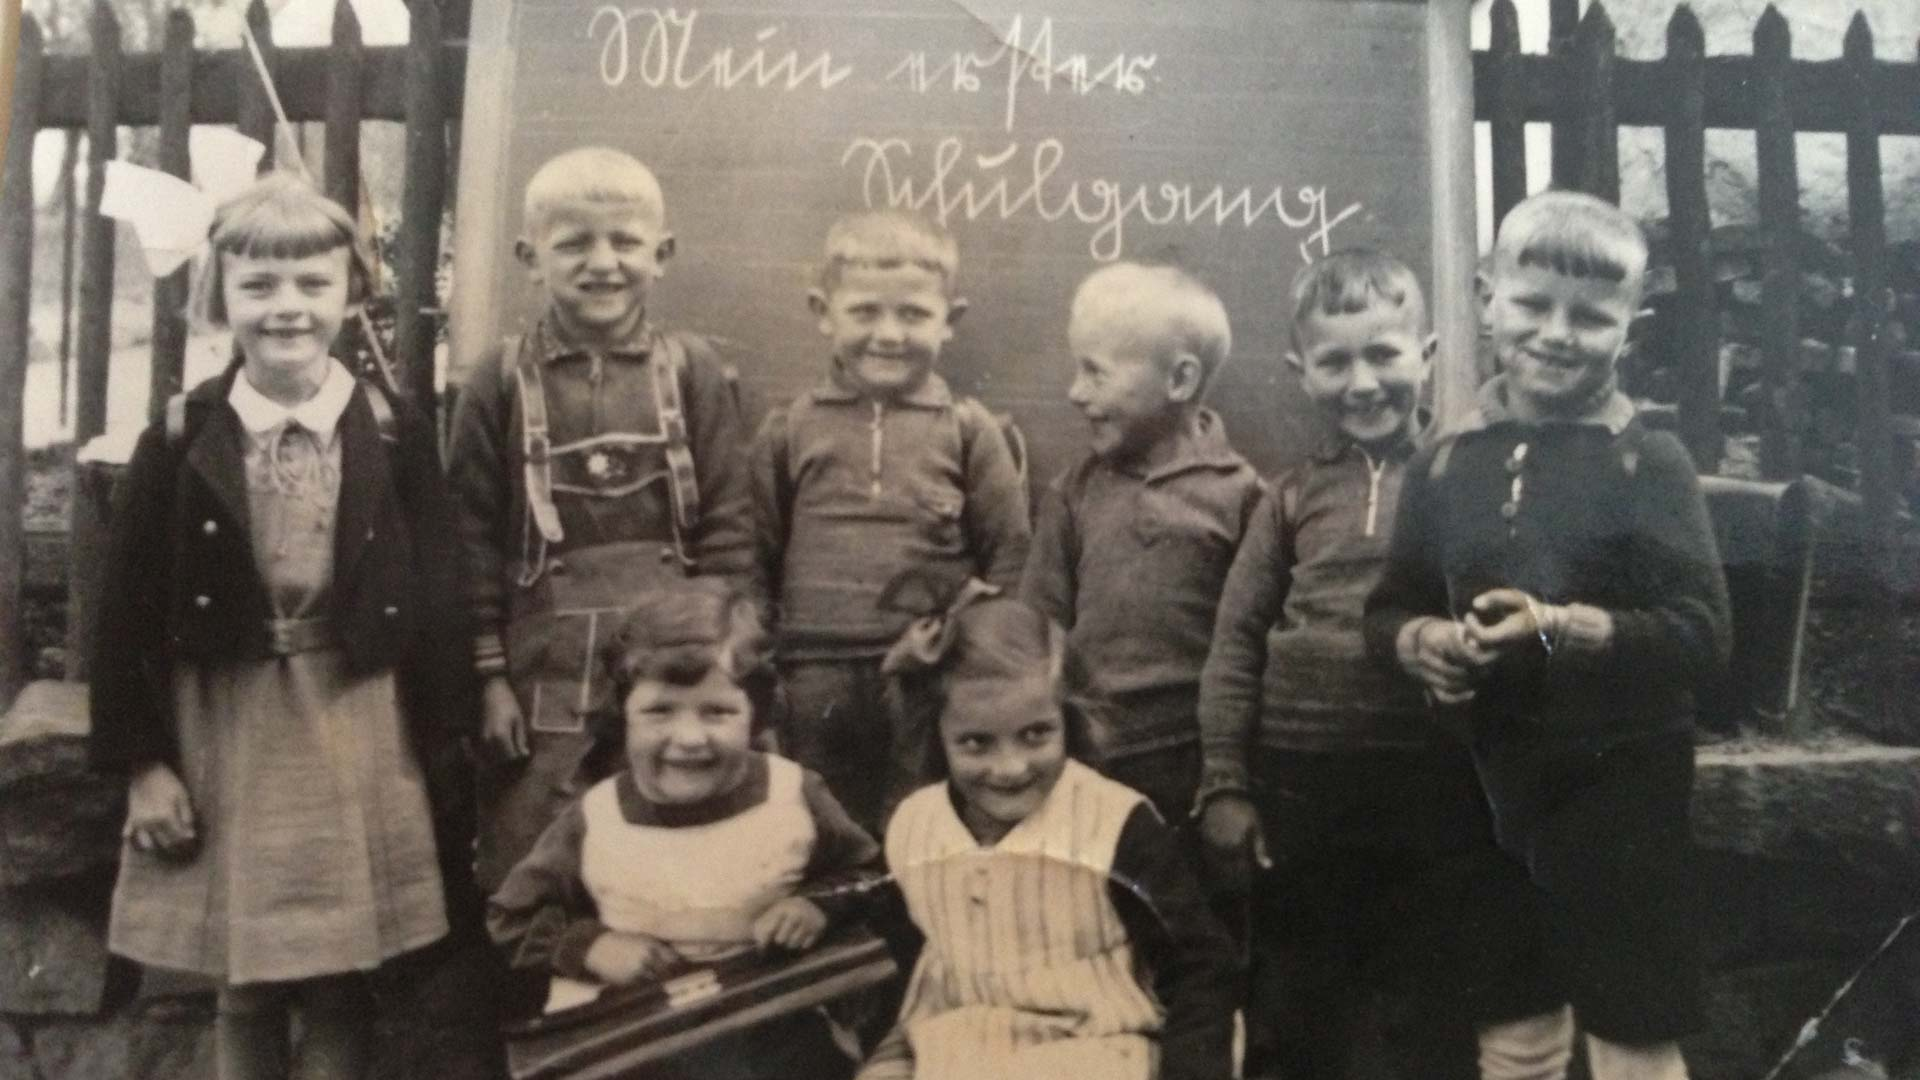 (6) 1938, First School Day, A Village School, Germany © Ströter-Bender Collection